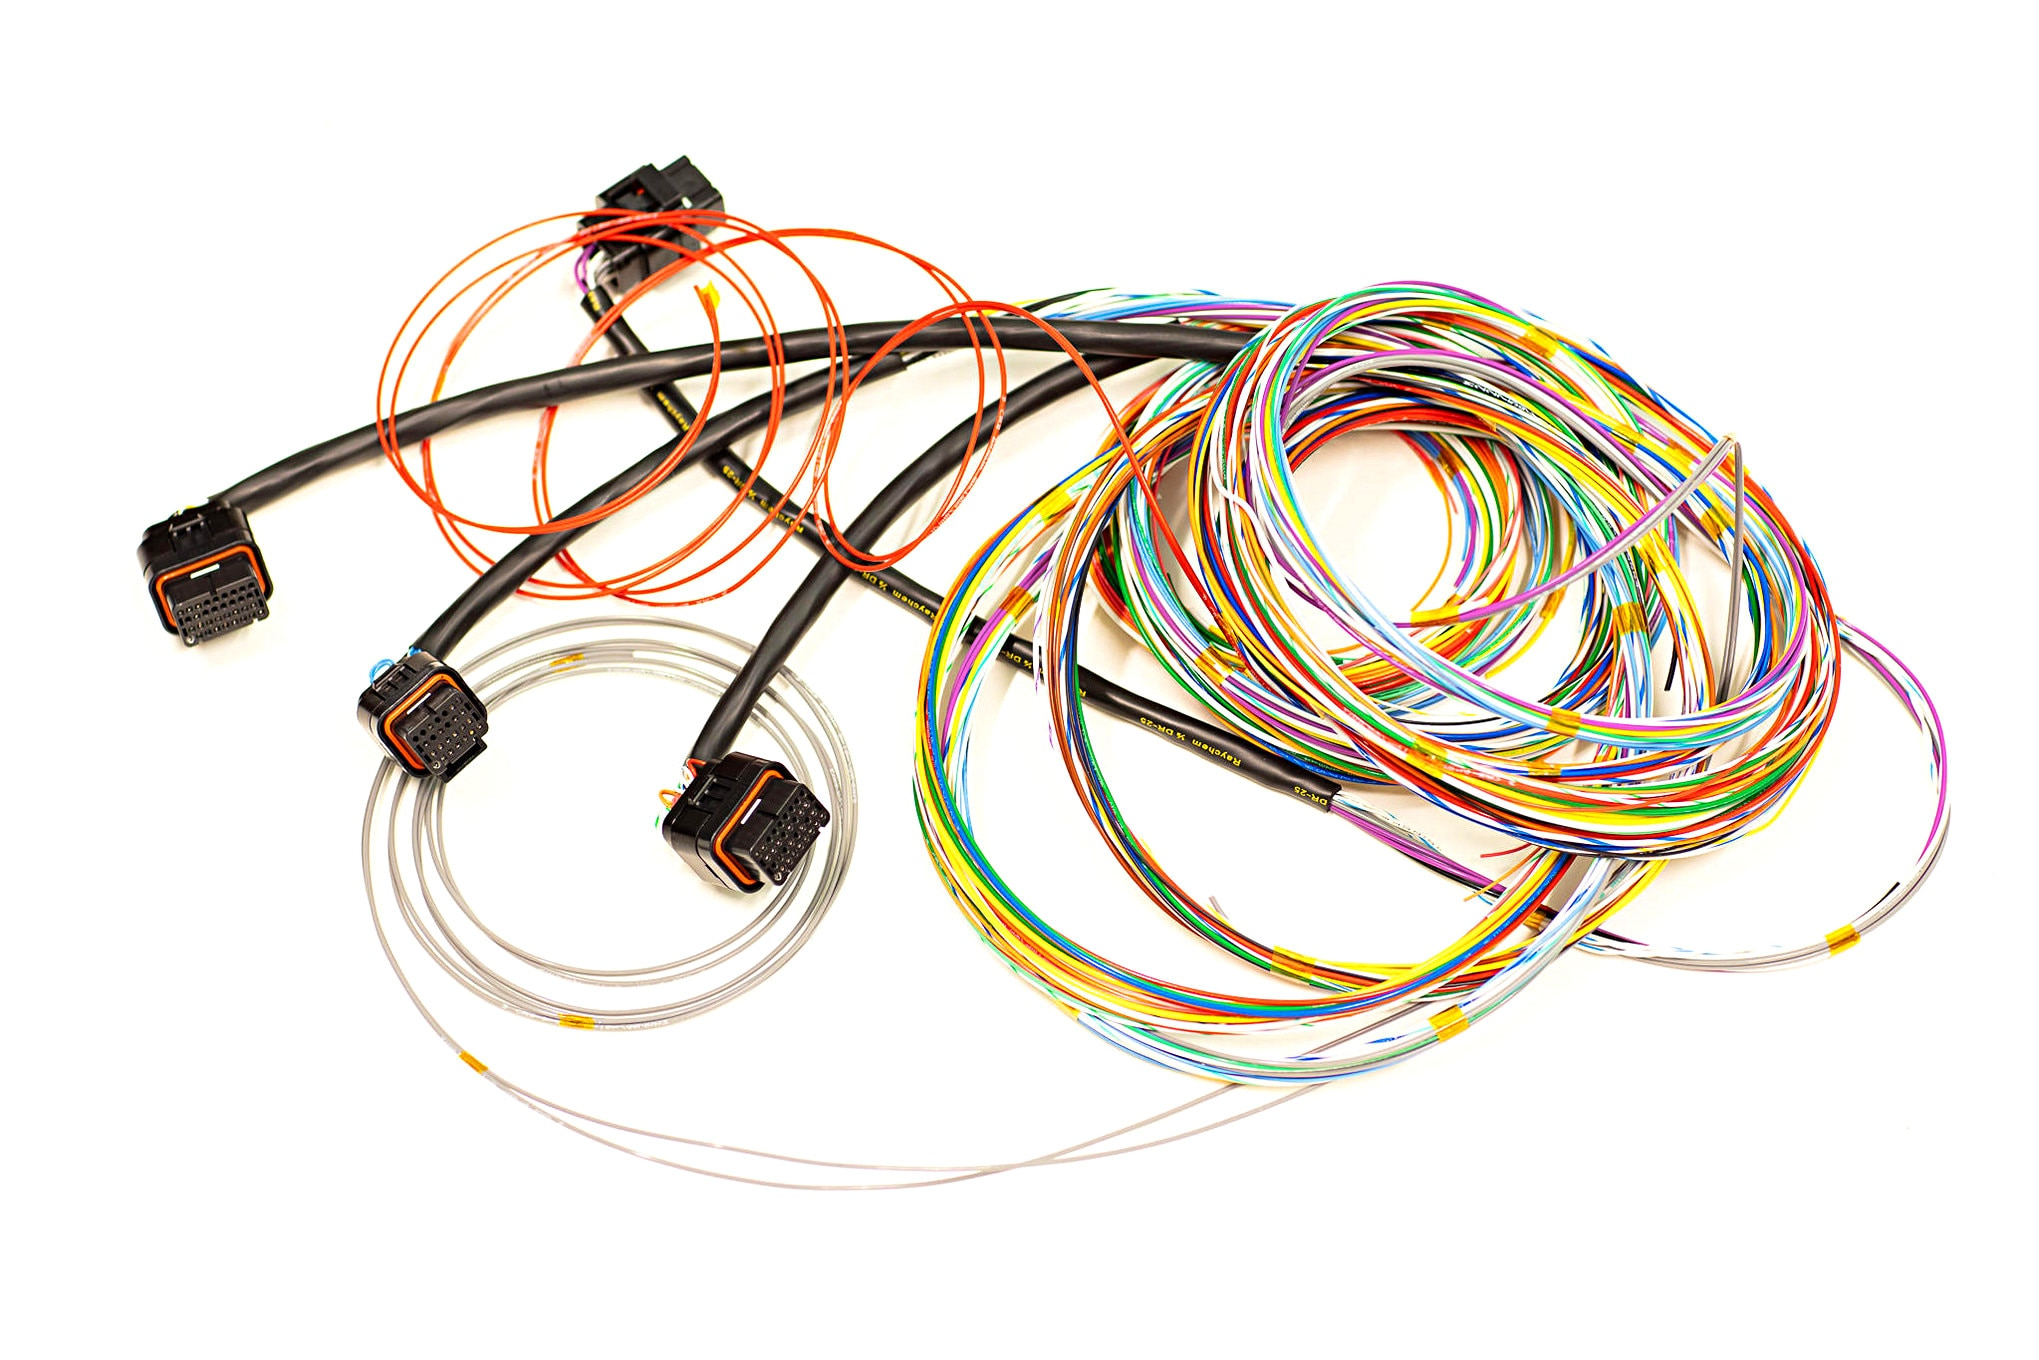 medium resolution of aero wiring harness wiring diagram sortautomotive mil spec wiring can improve your cars electrical system aero